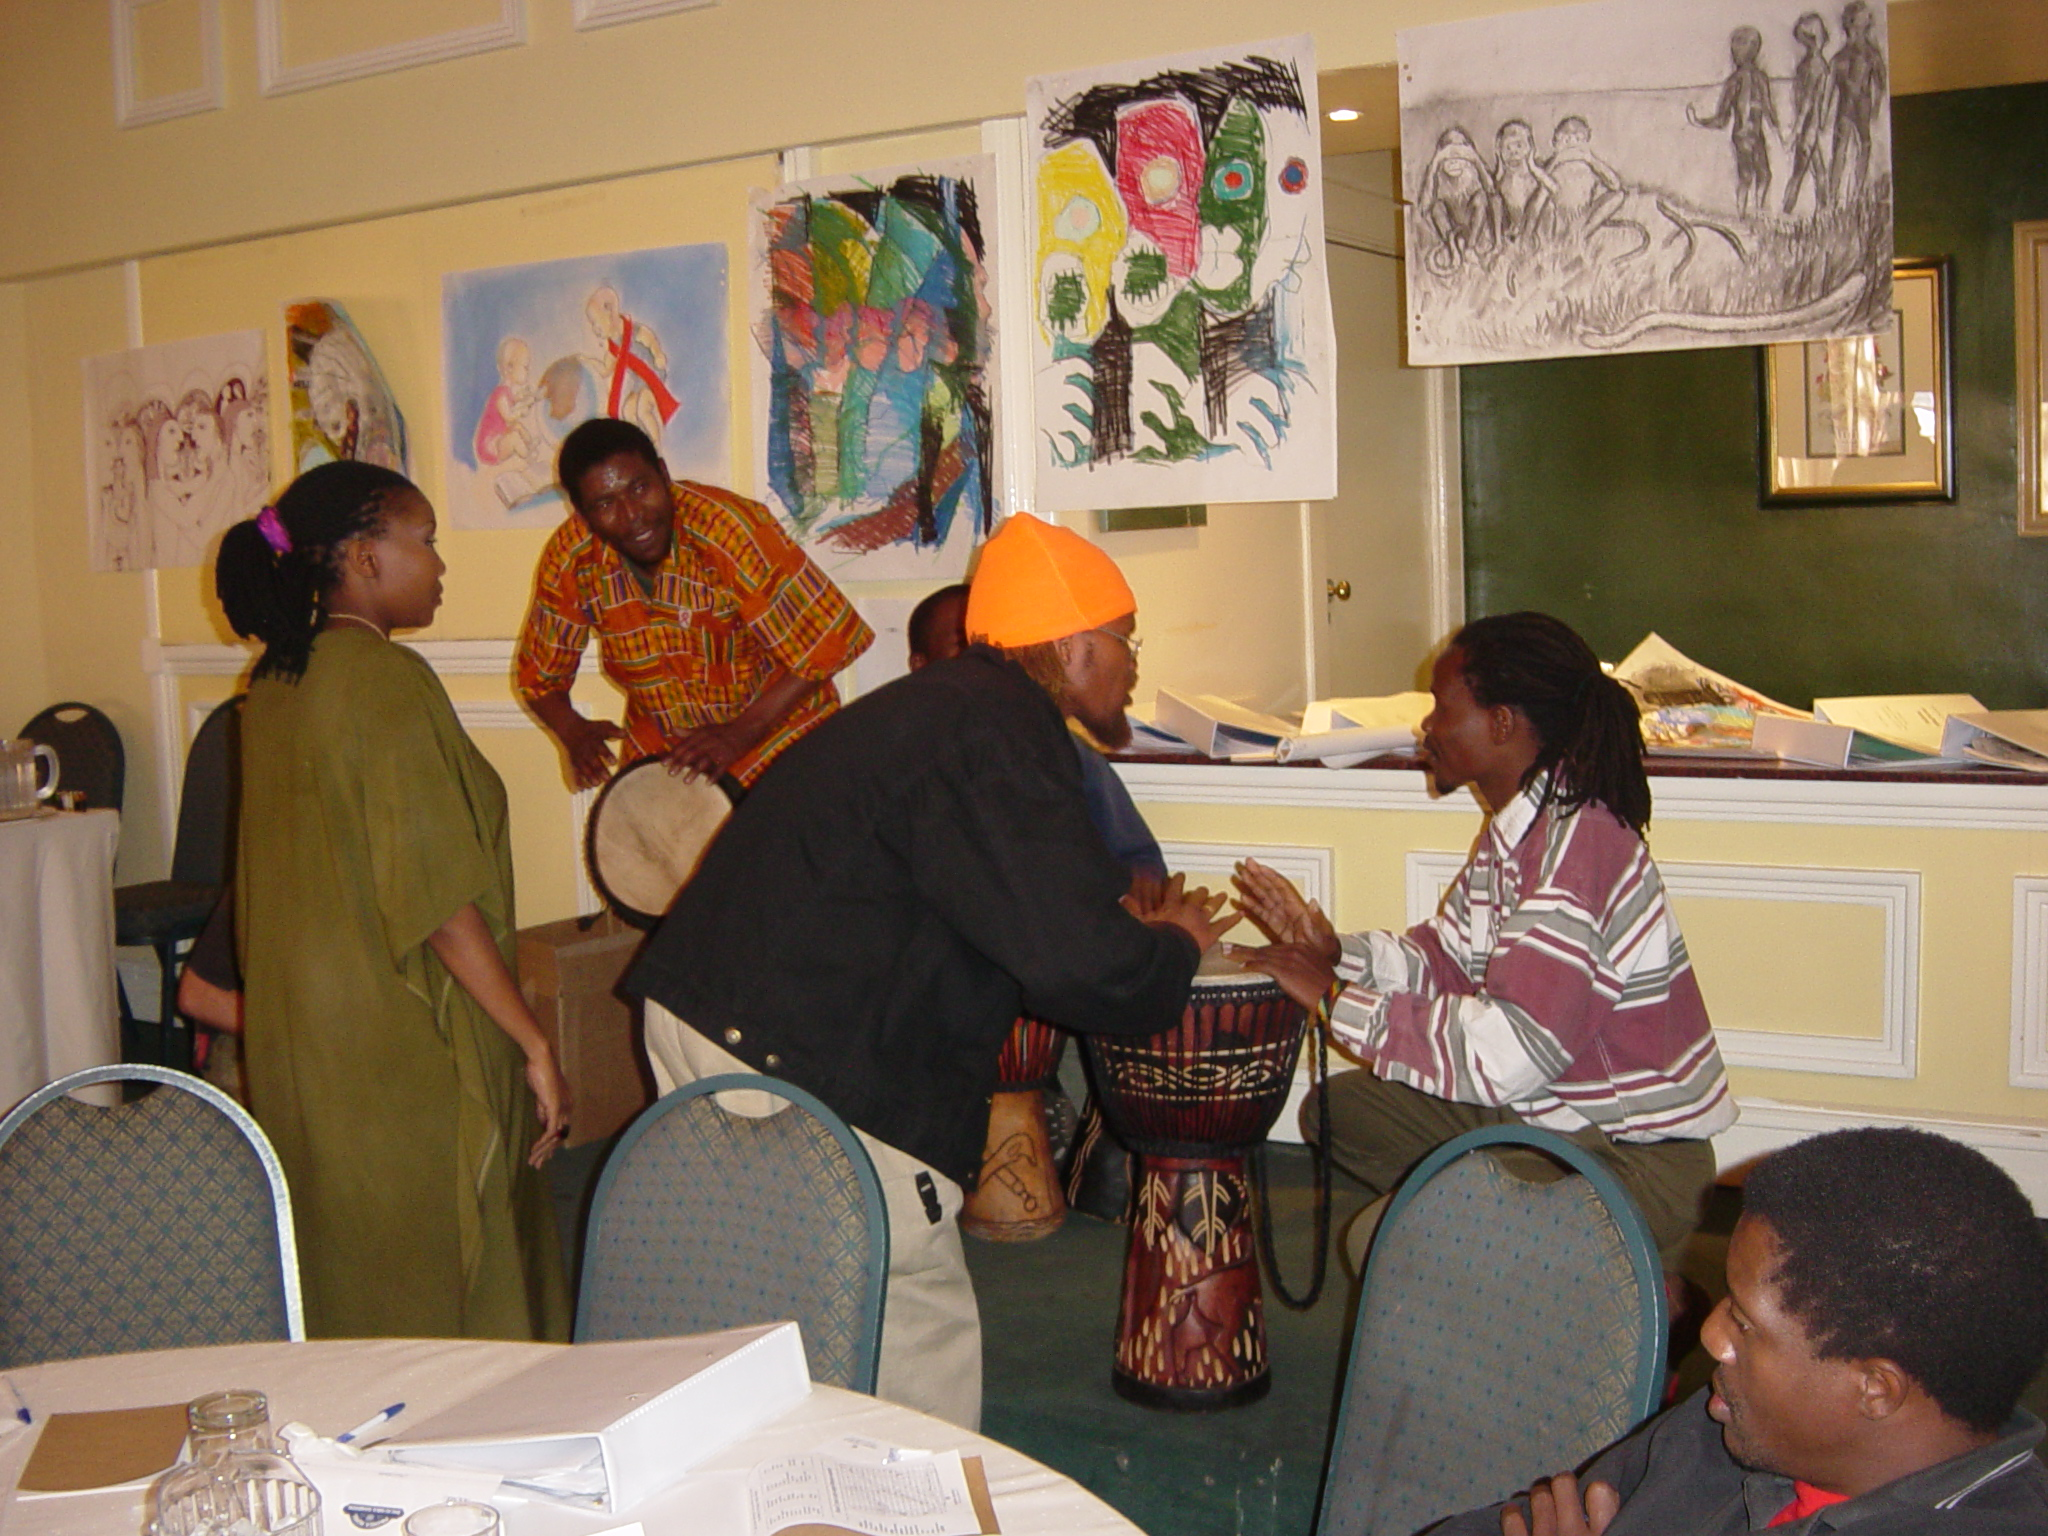 Leading Southern African Musicians & Painters creating a new narrative embracing PLHWAs